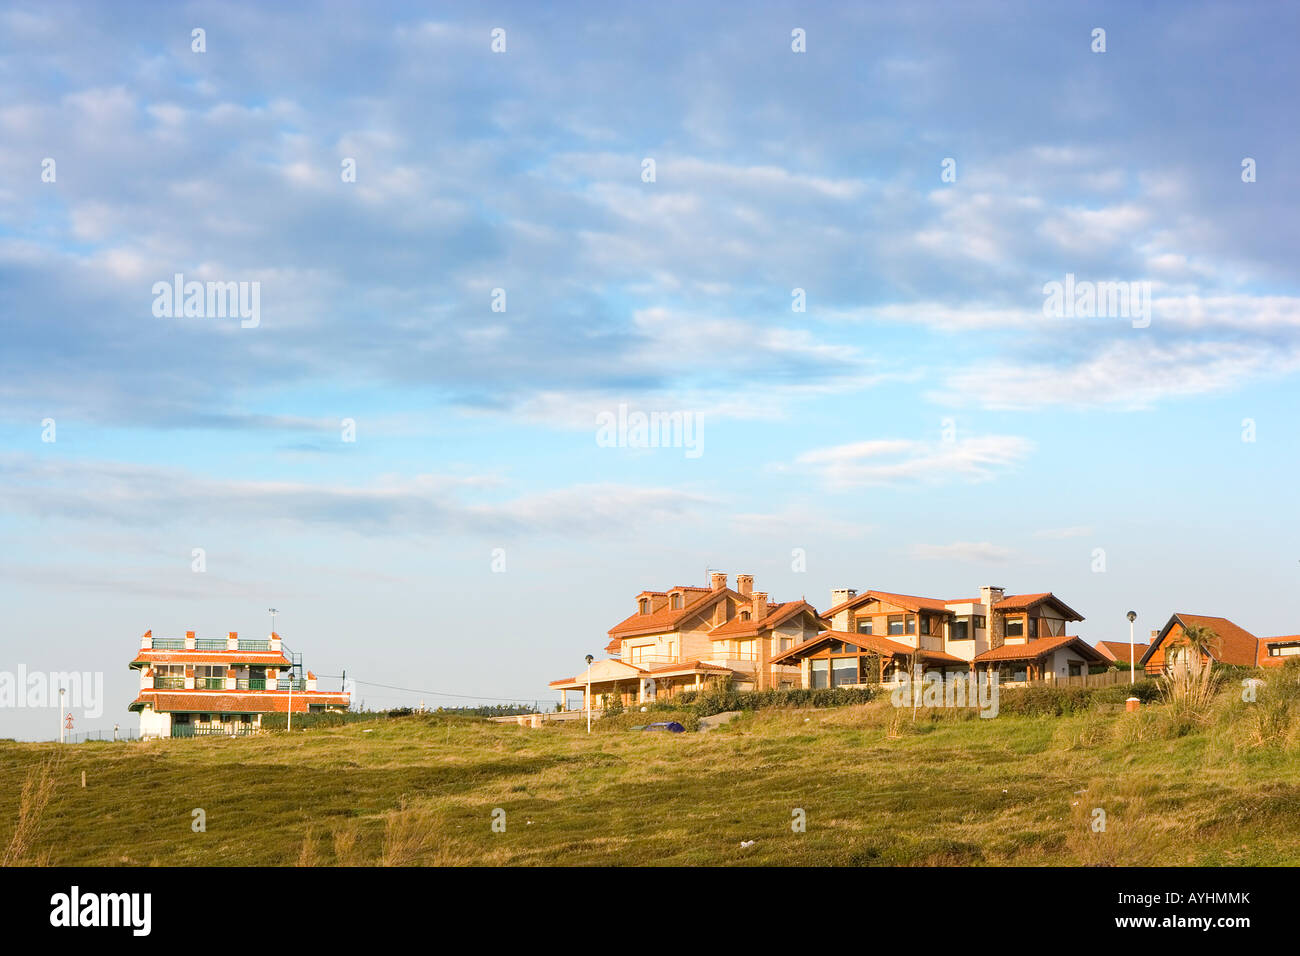 image of a hollyday house in the leand with a blue sky - Stock Image